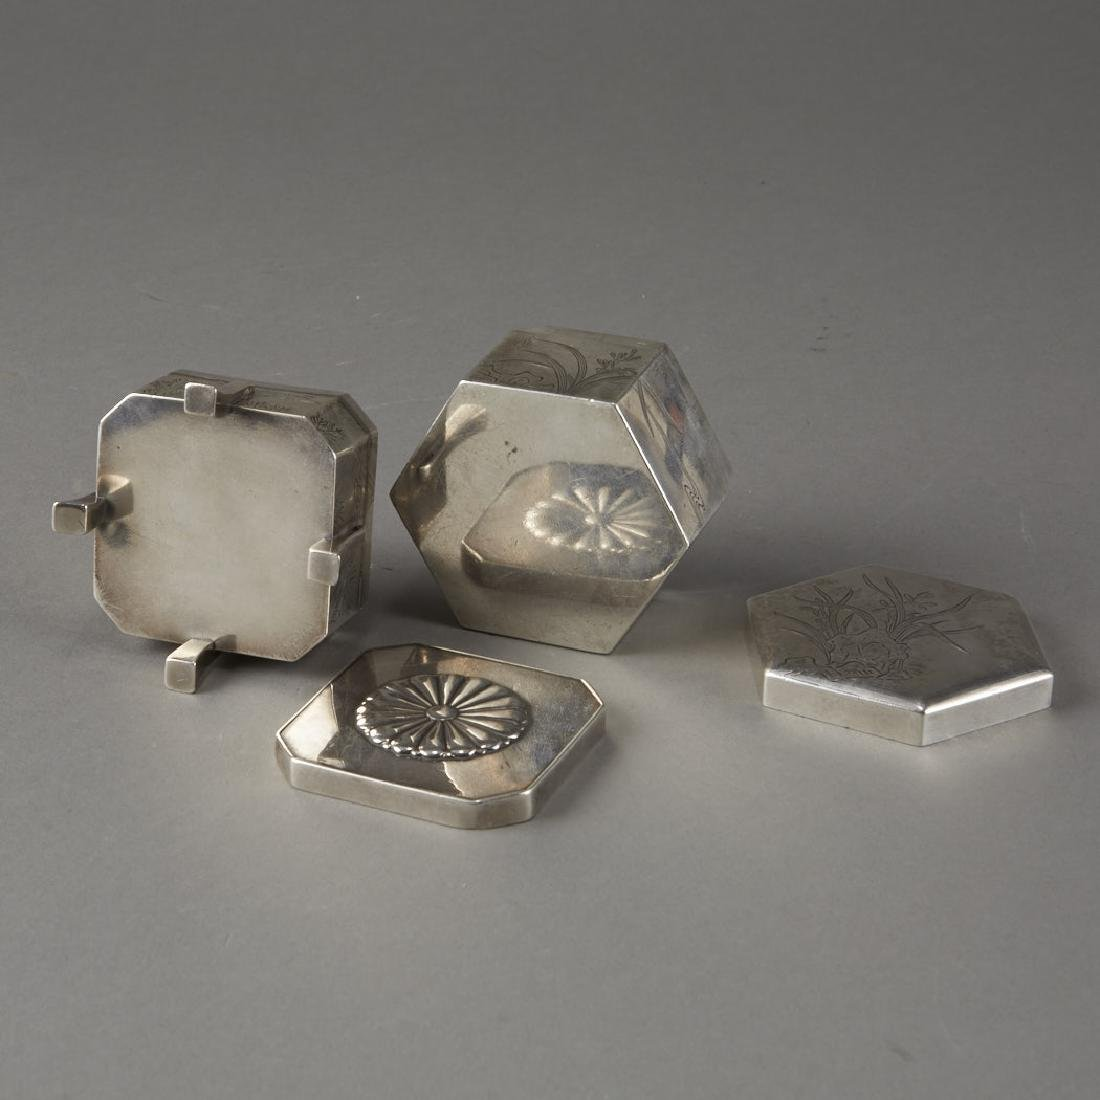 Japanese 20th C. Silver Boxes Decoration - 7